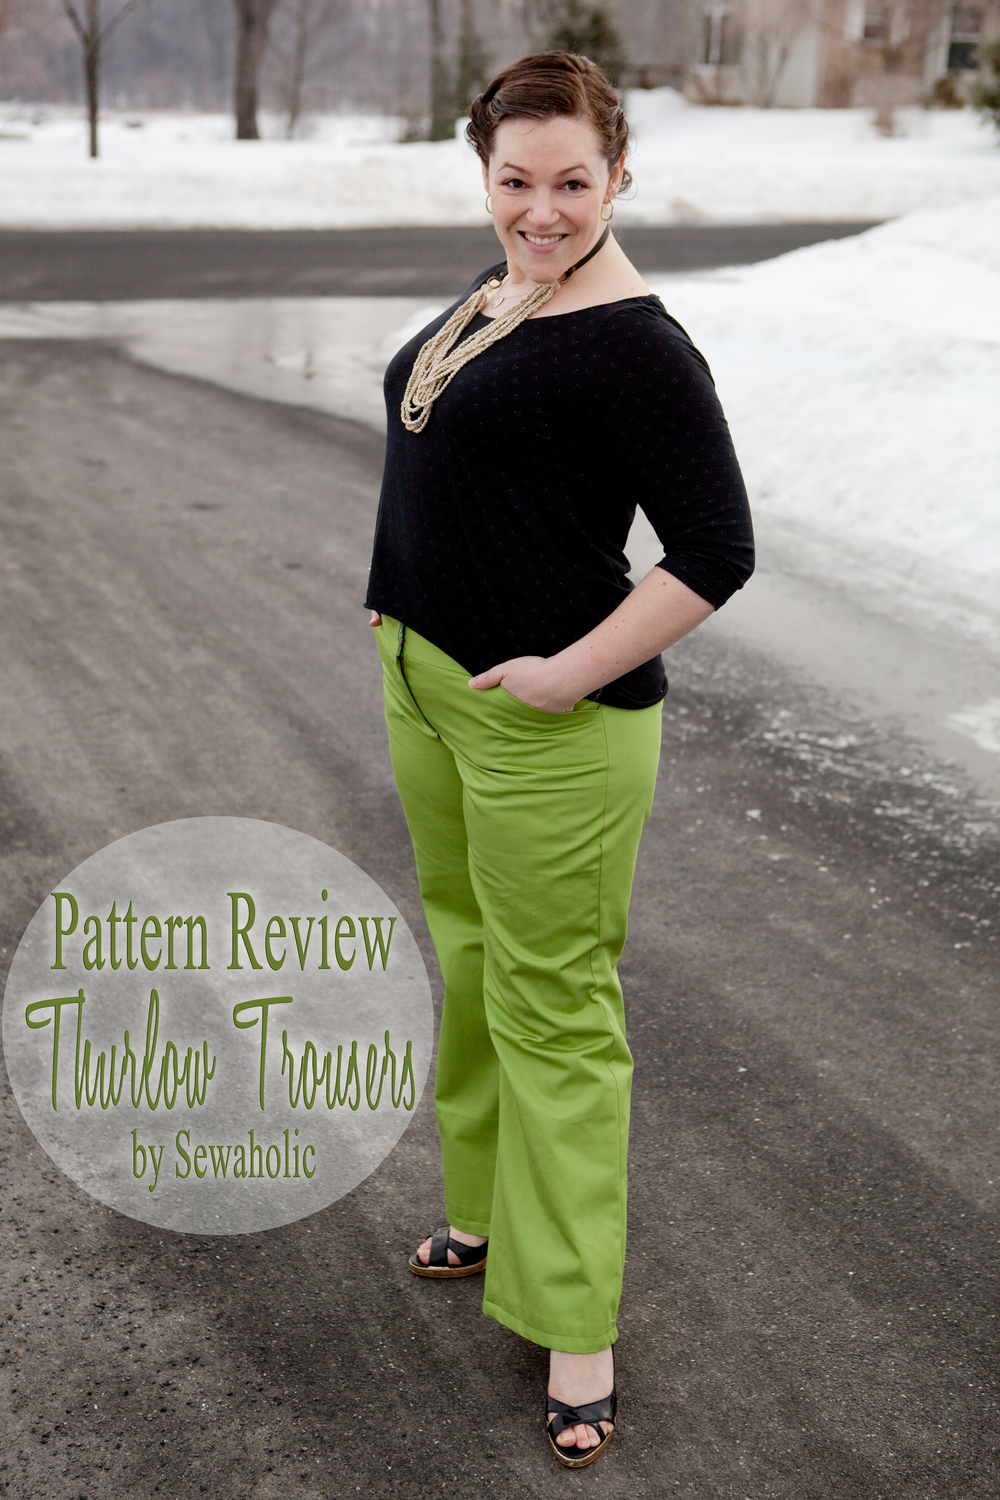 thurlow trousers title.jpg